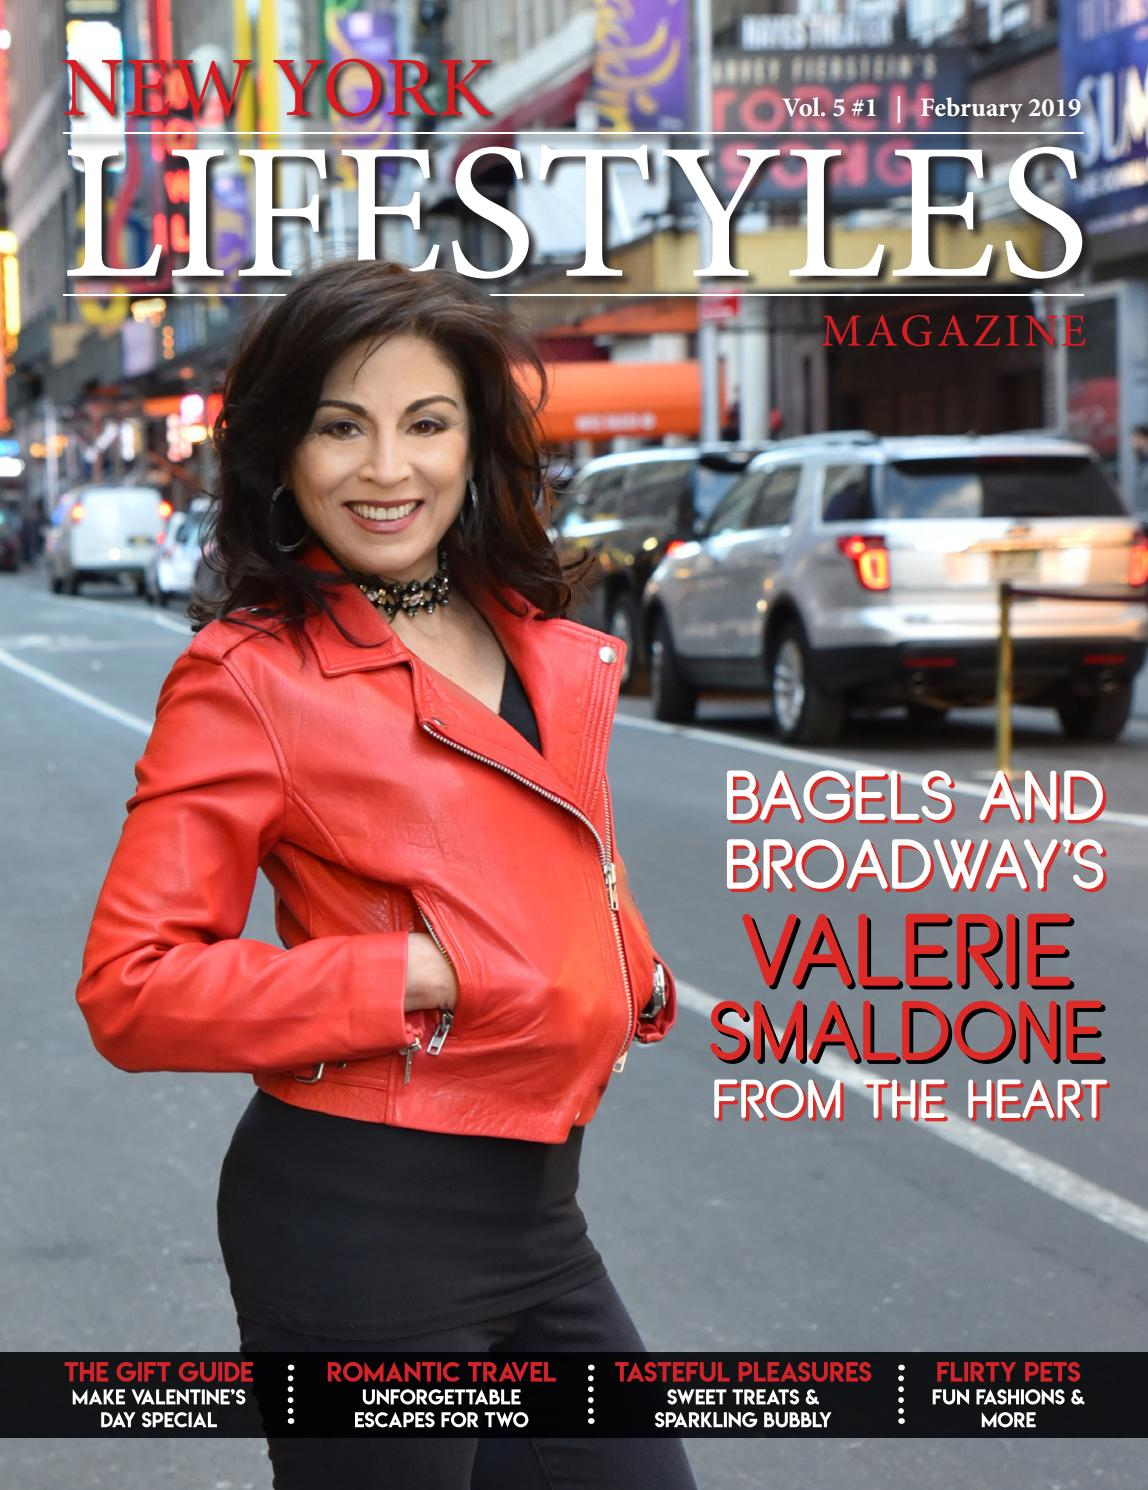 af6e831d5cb New York Lifestyles Magazine - February 2019 by New York Lifestyles  Magazine - issuu